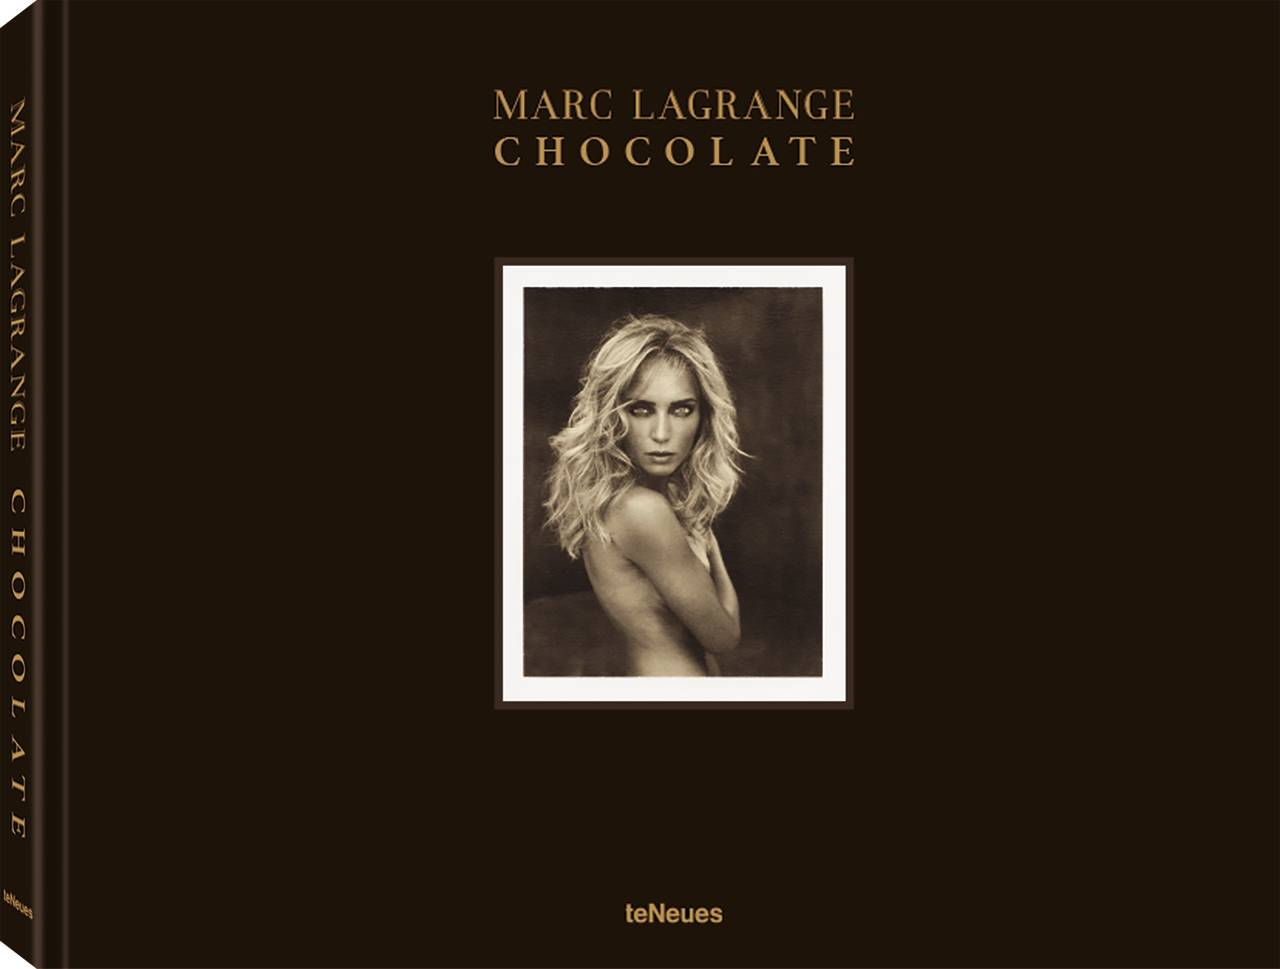 © Chocolate by Marc Lagrange, published by teNeues, www.teneues.com, Selene, Photo © 2019 Marc Lagrange. All rights reserved.